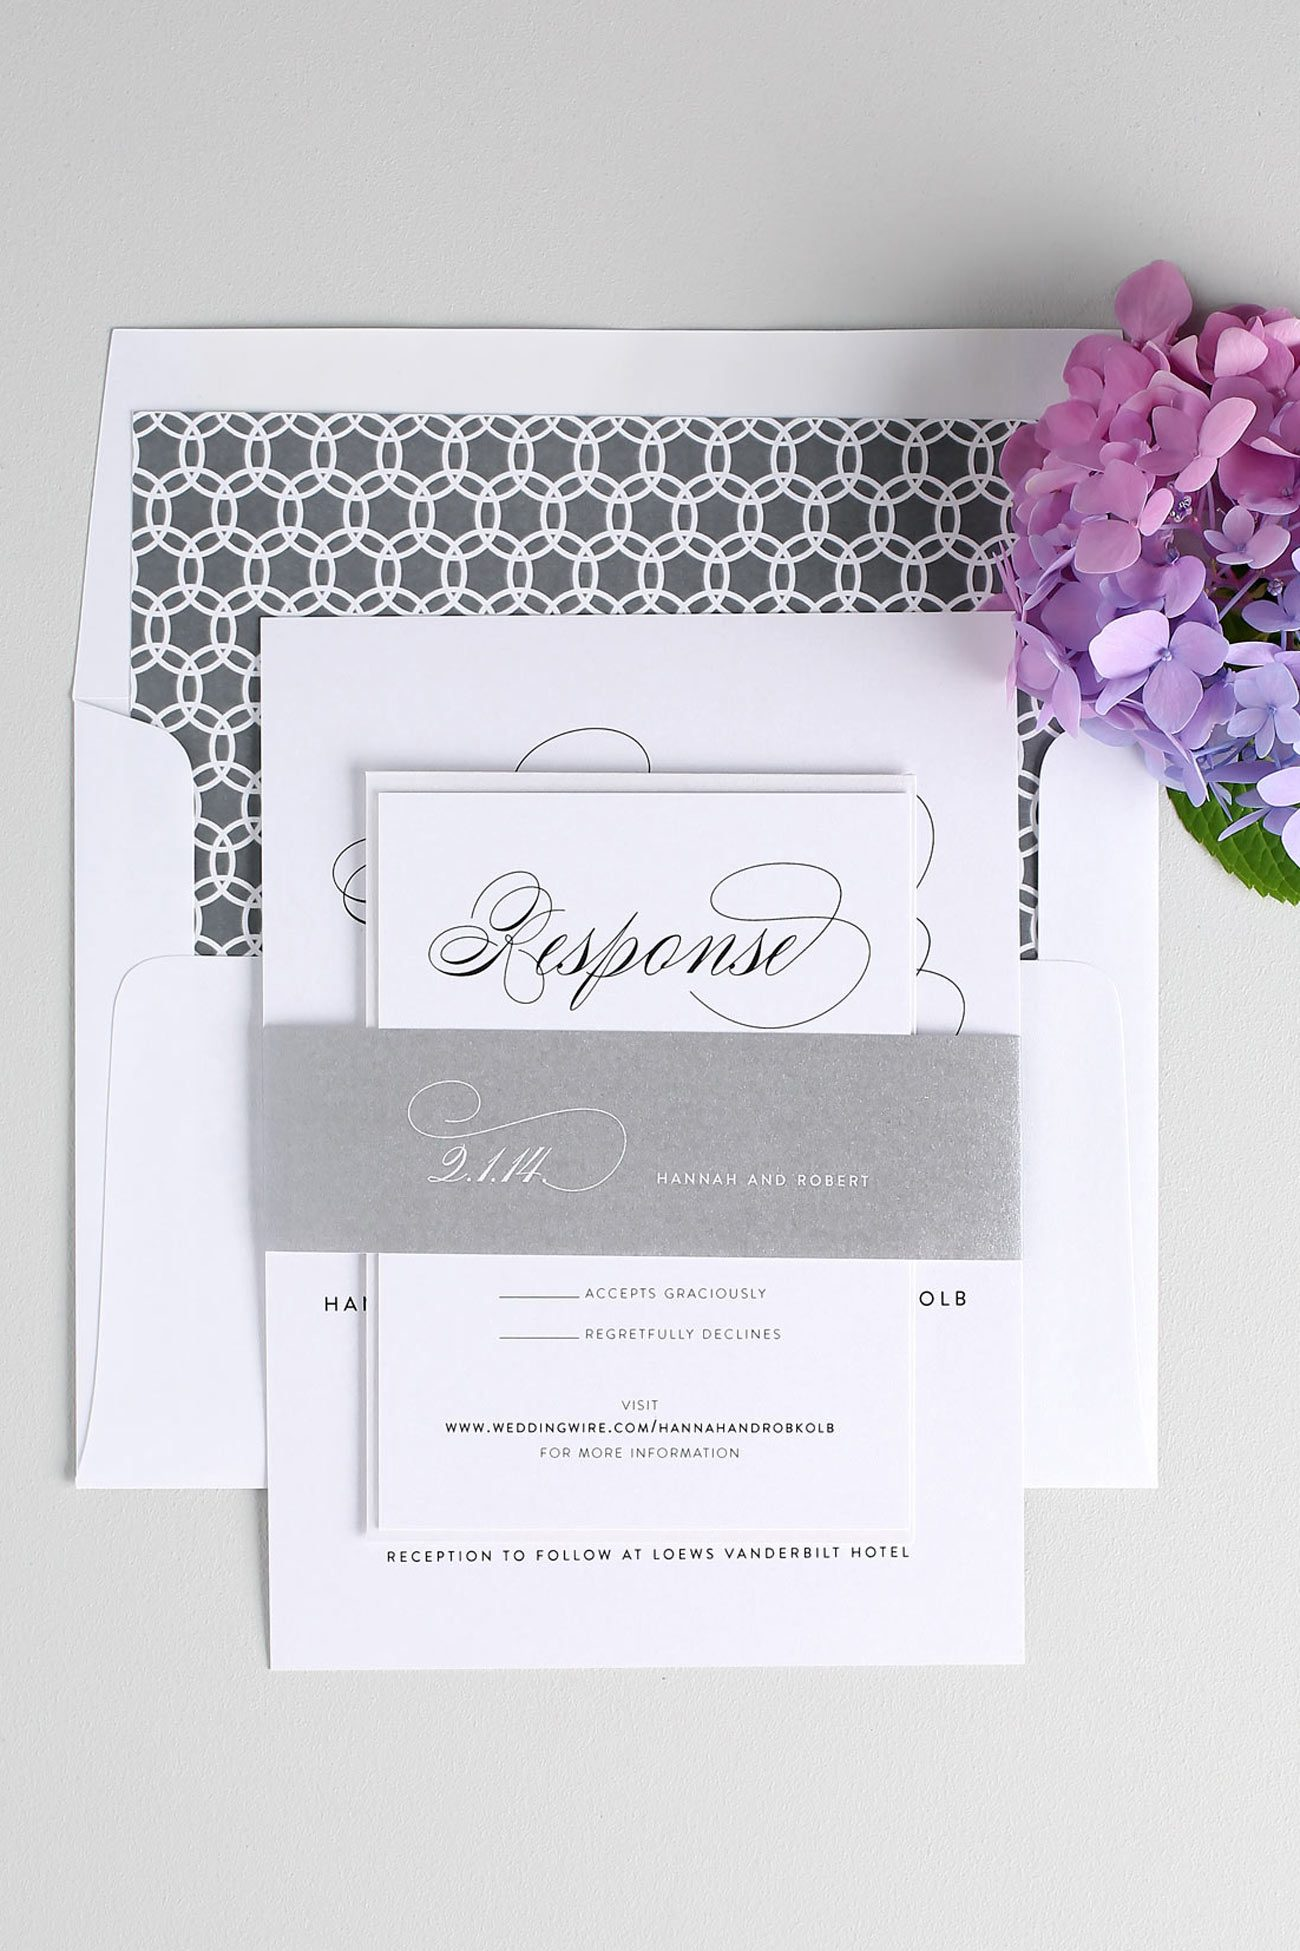 Script elegant wedding invitations with a circle liner